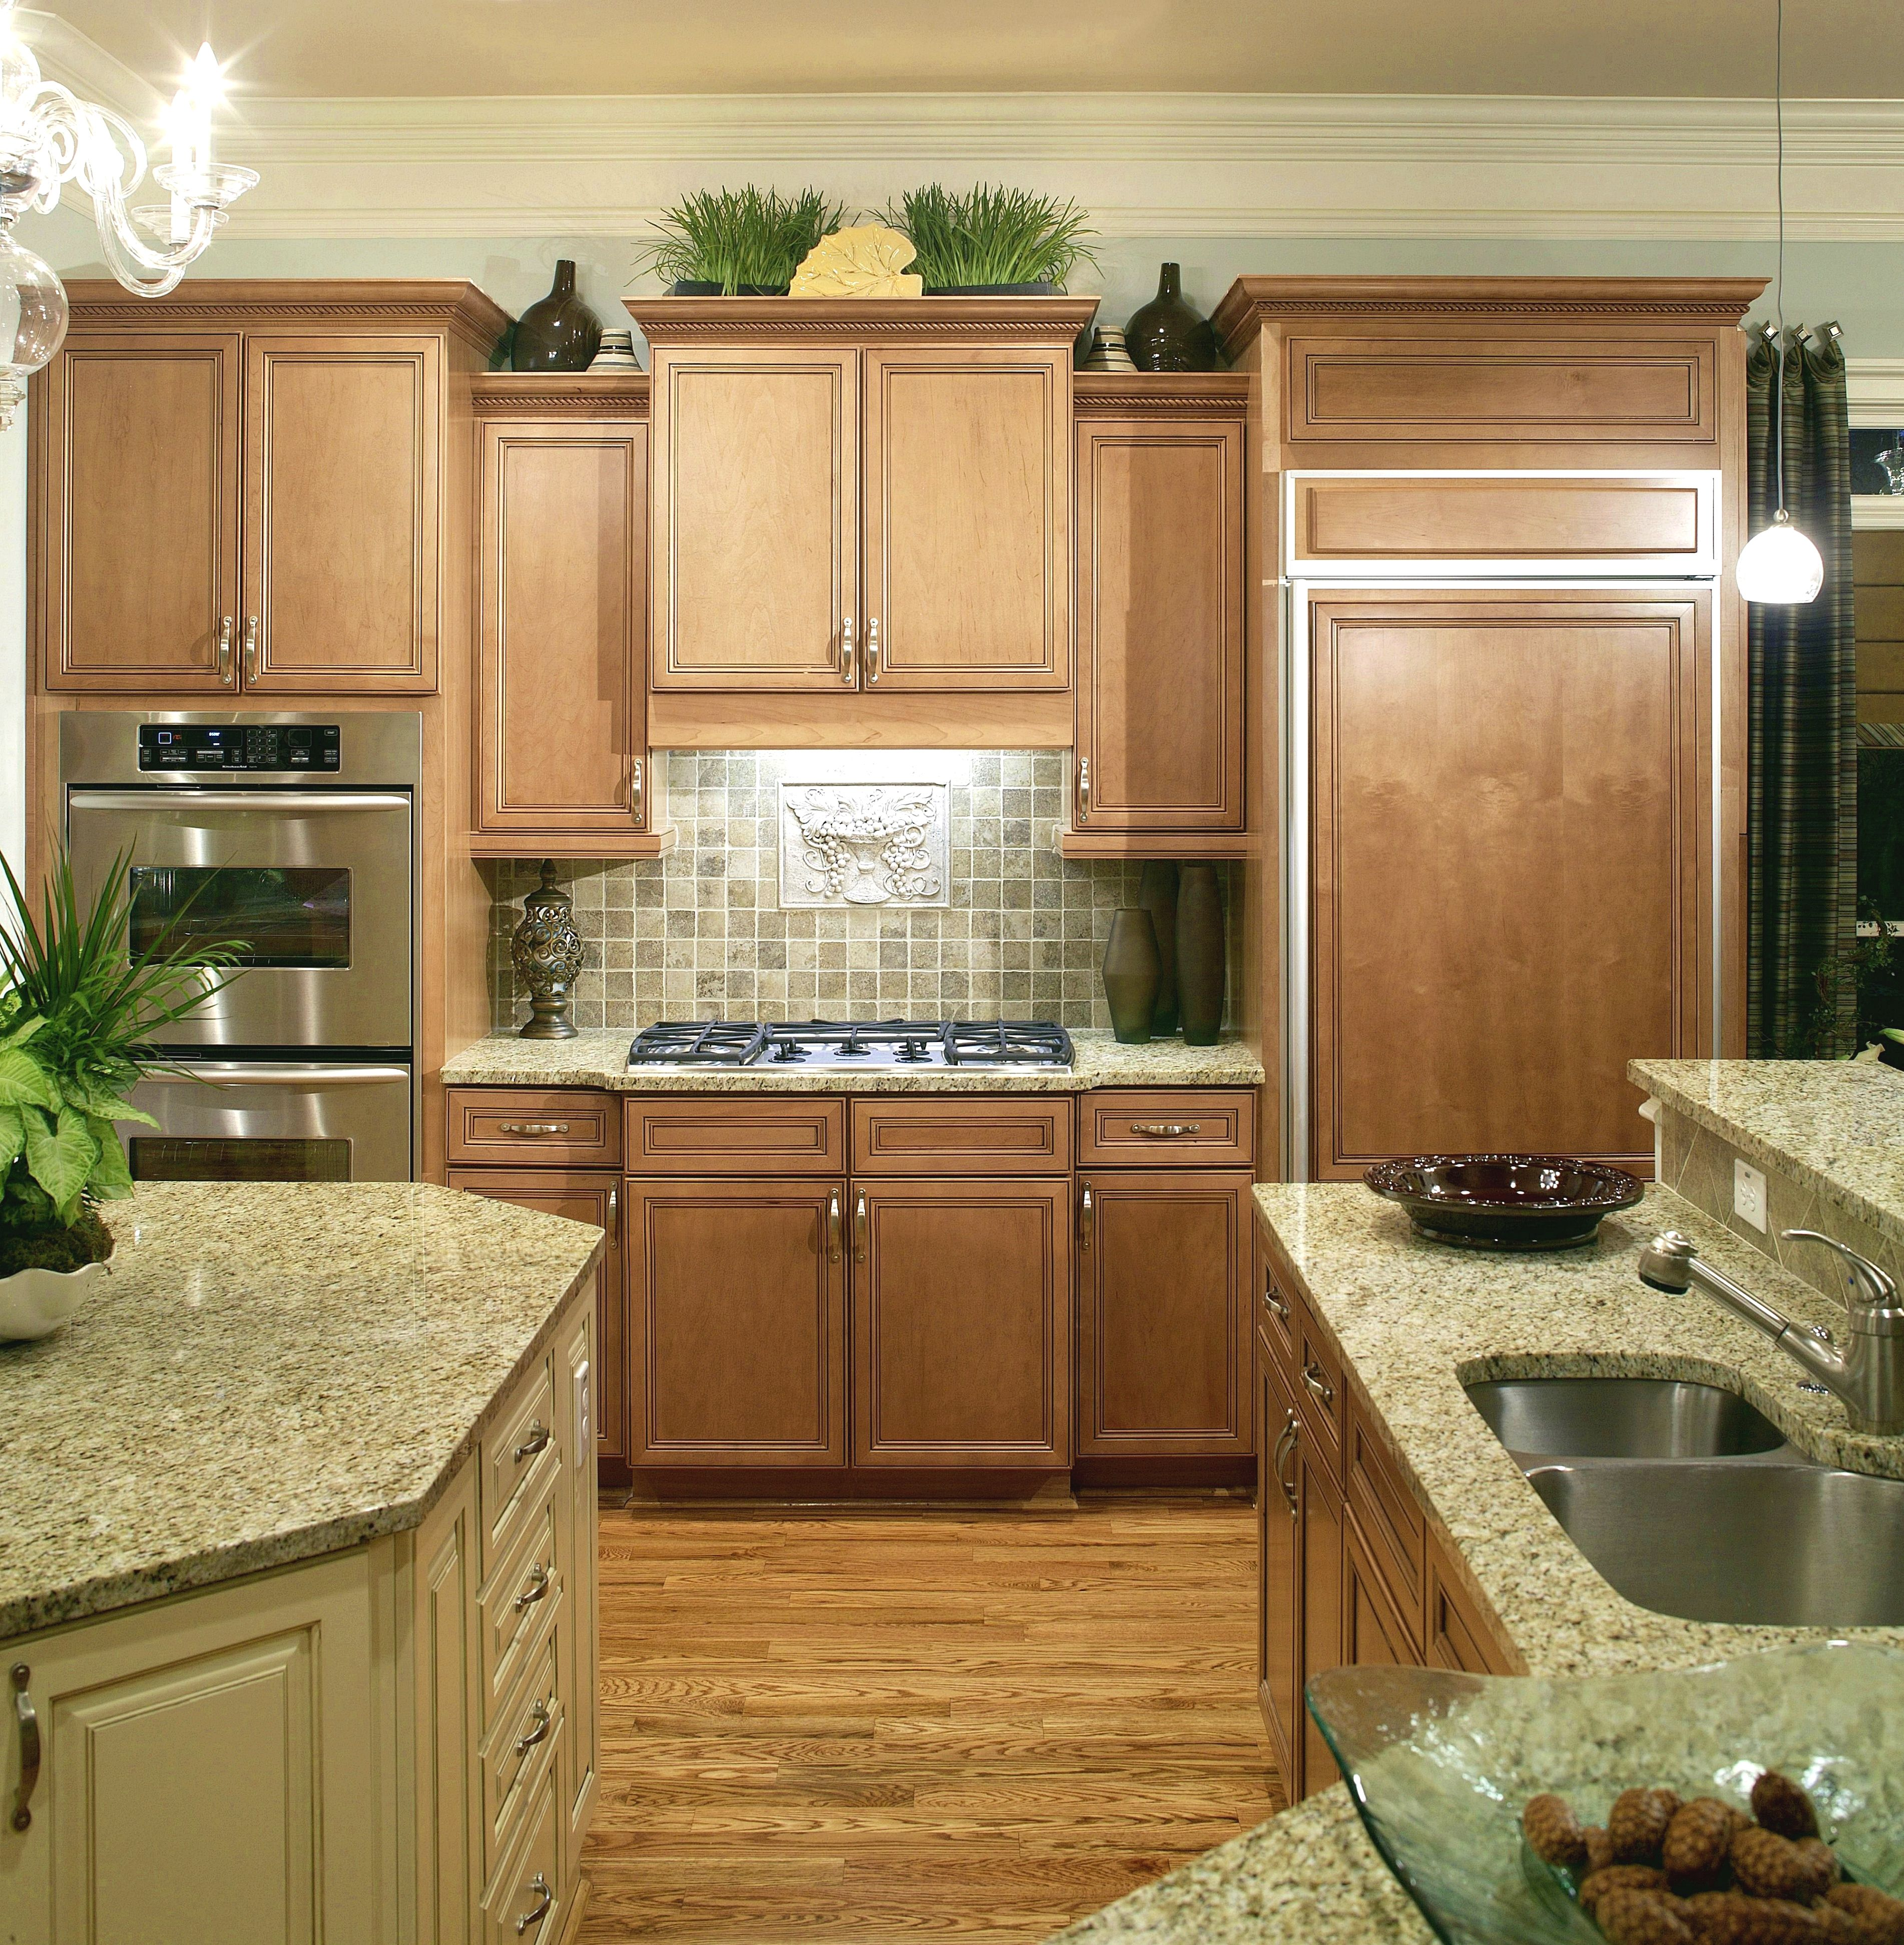 The Easiest Way To Renovate Your Kitchen: Choosing The Best Kitchen Flooring For Your Home